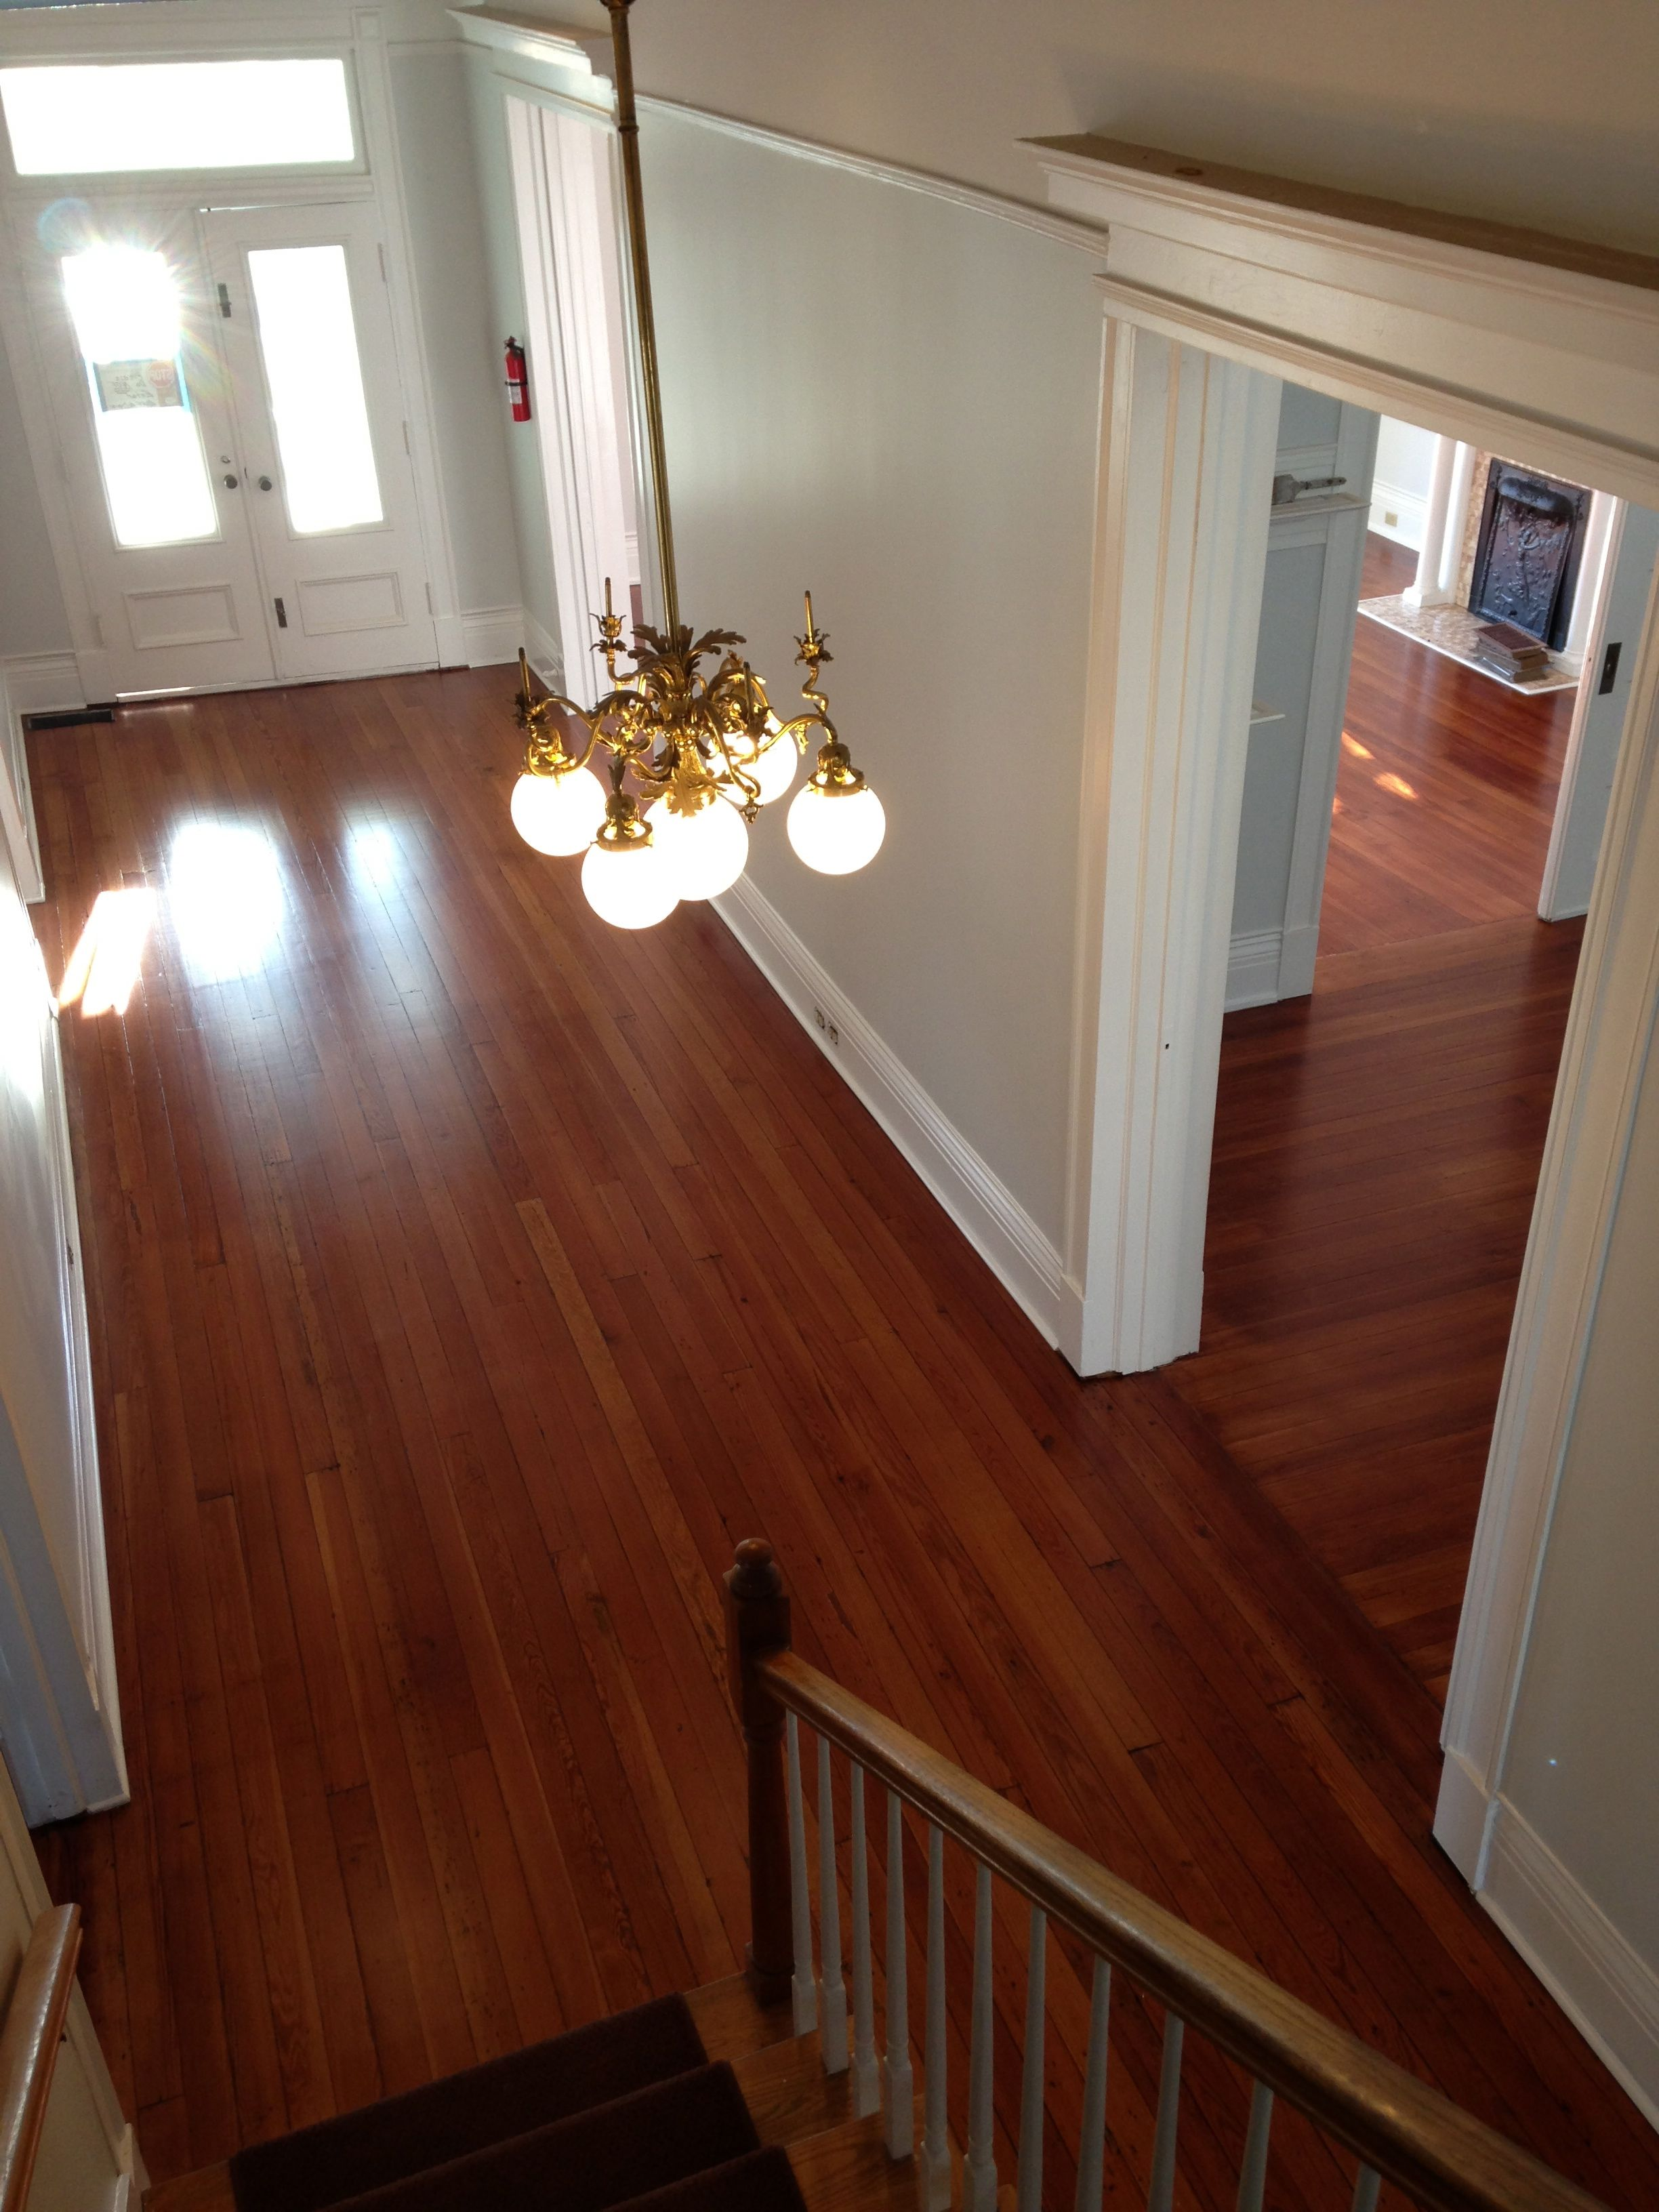 Photo from top of stairs view of an entry foyer of satin finished, red toned, hardwood floors that were previous cover with tar and tile.